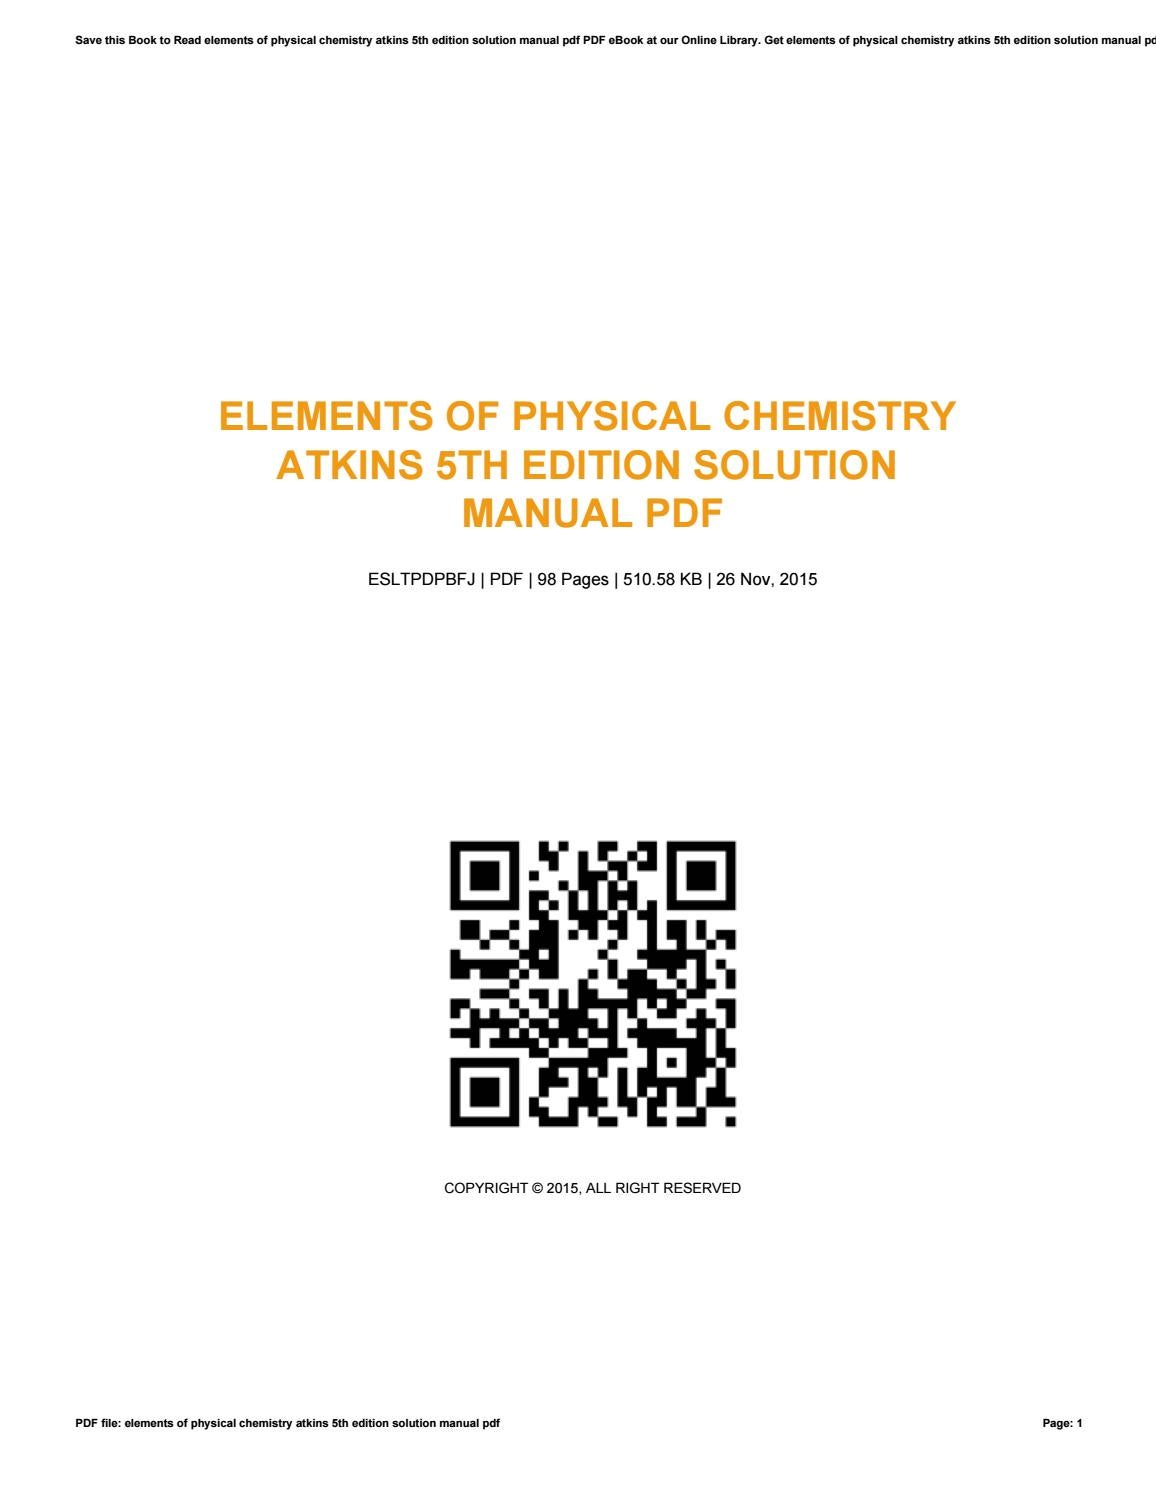 Elements of physical chemistry atkins 5th edition solution manual pdf by  Virginia - issuu